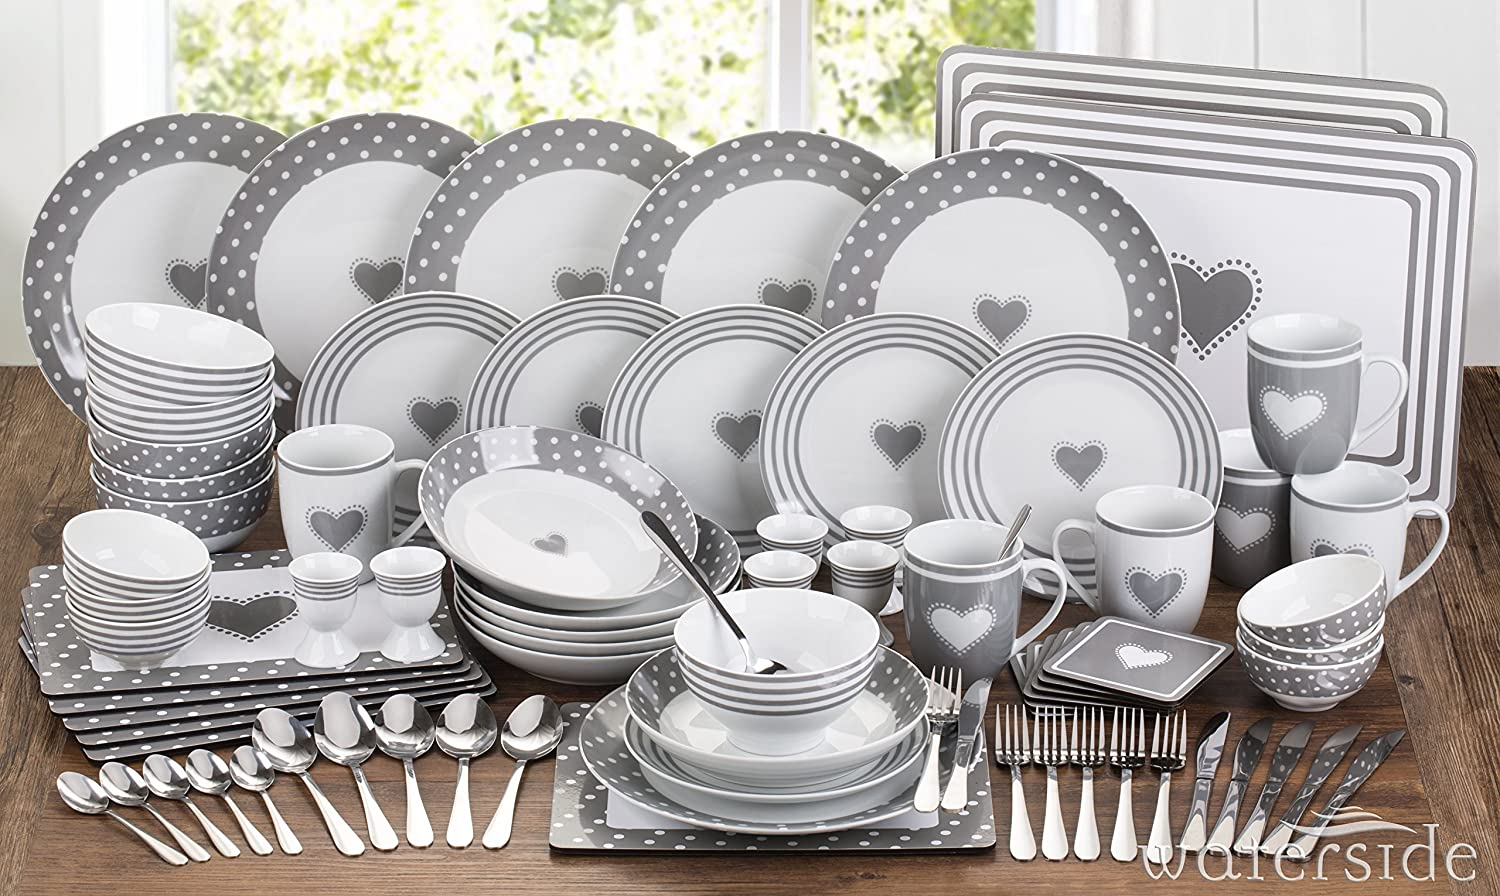 80 Piece Grey Heart Combo Set Waterside Fine China